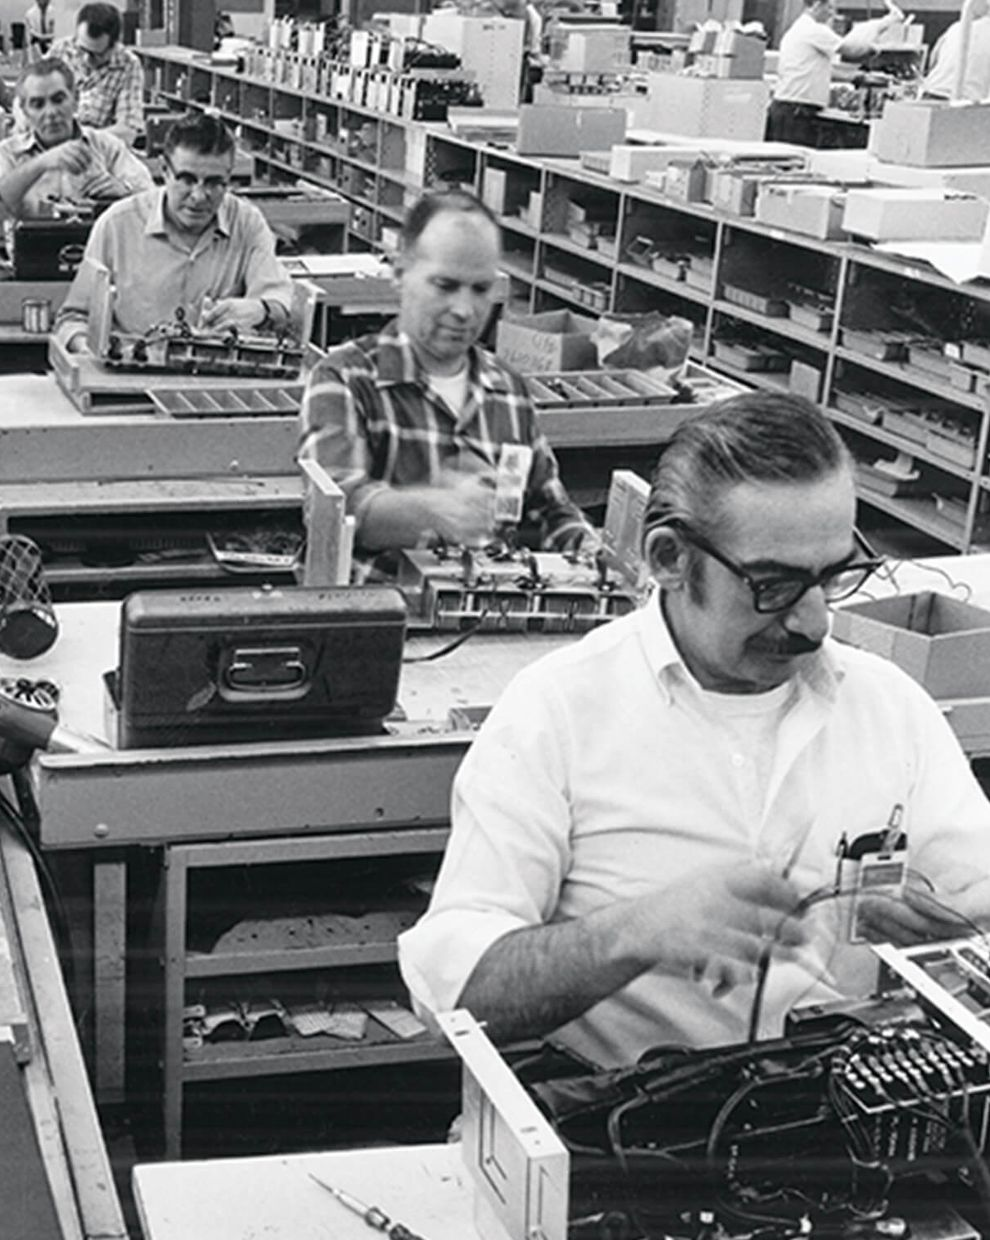 Workers assembling components